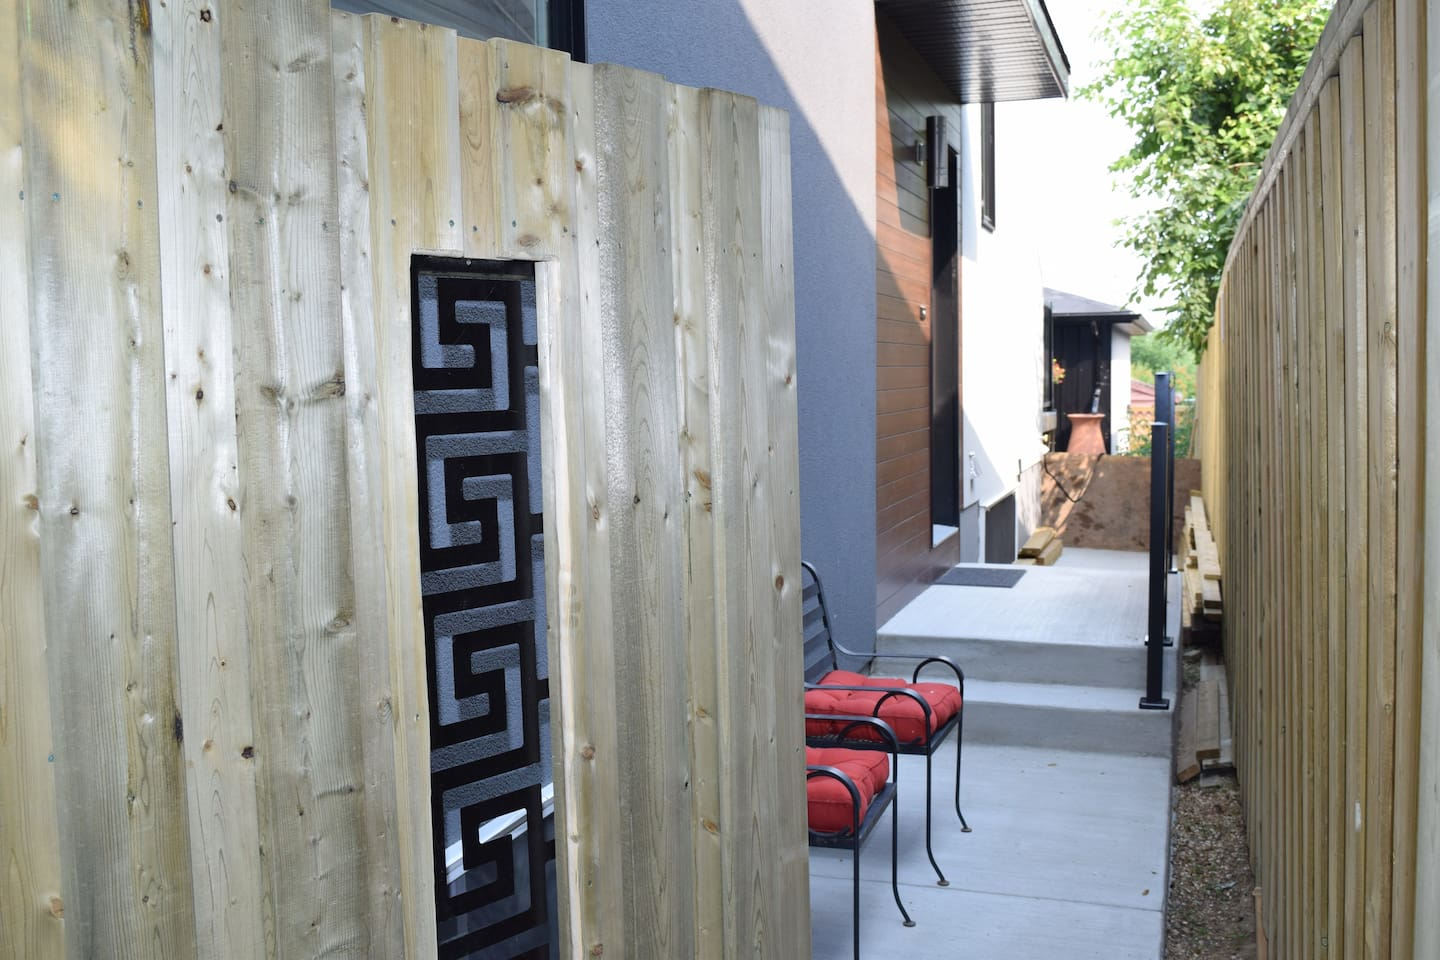 Private side entrance to suite, facing back yard